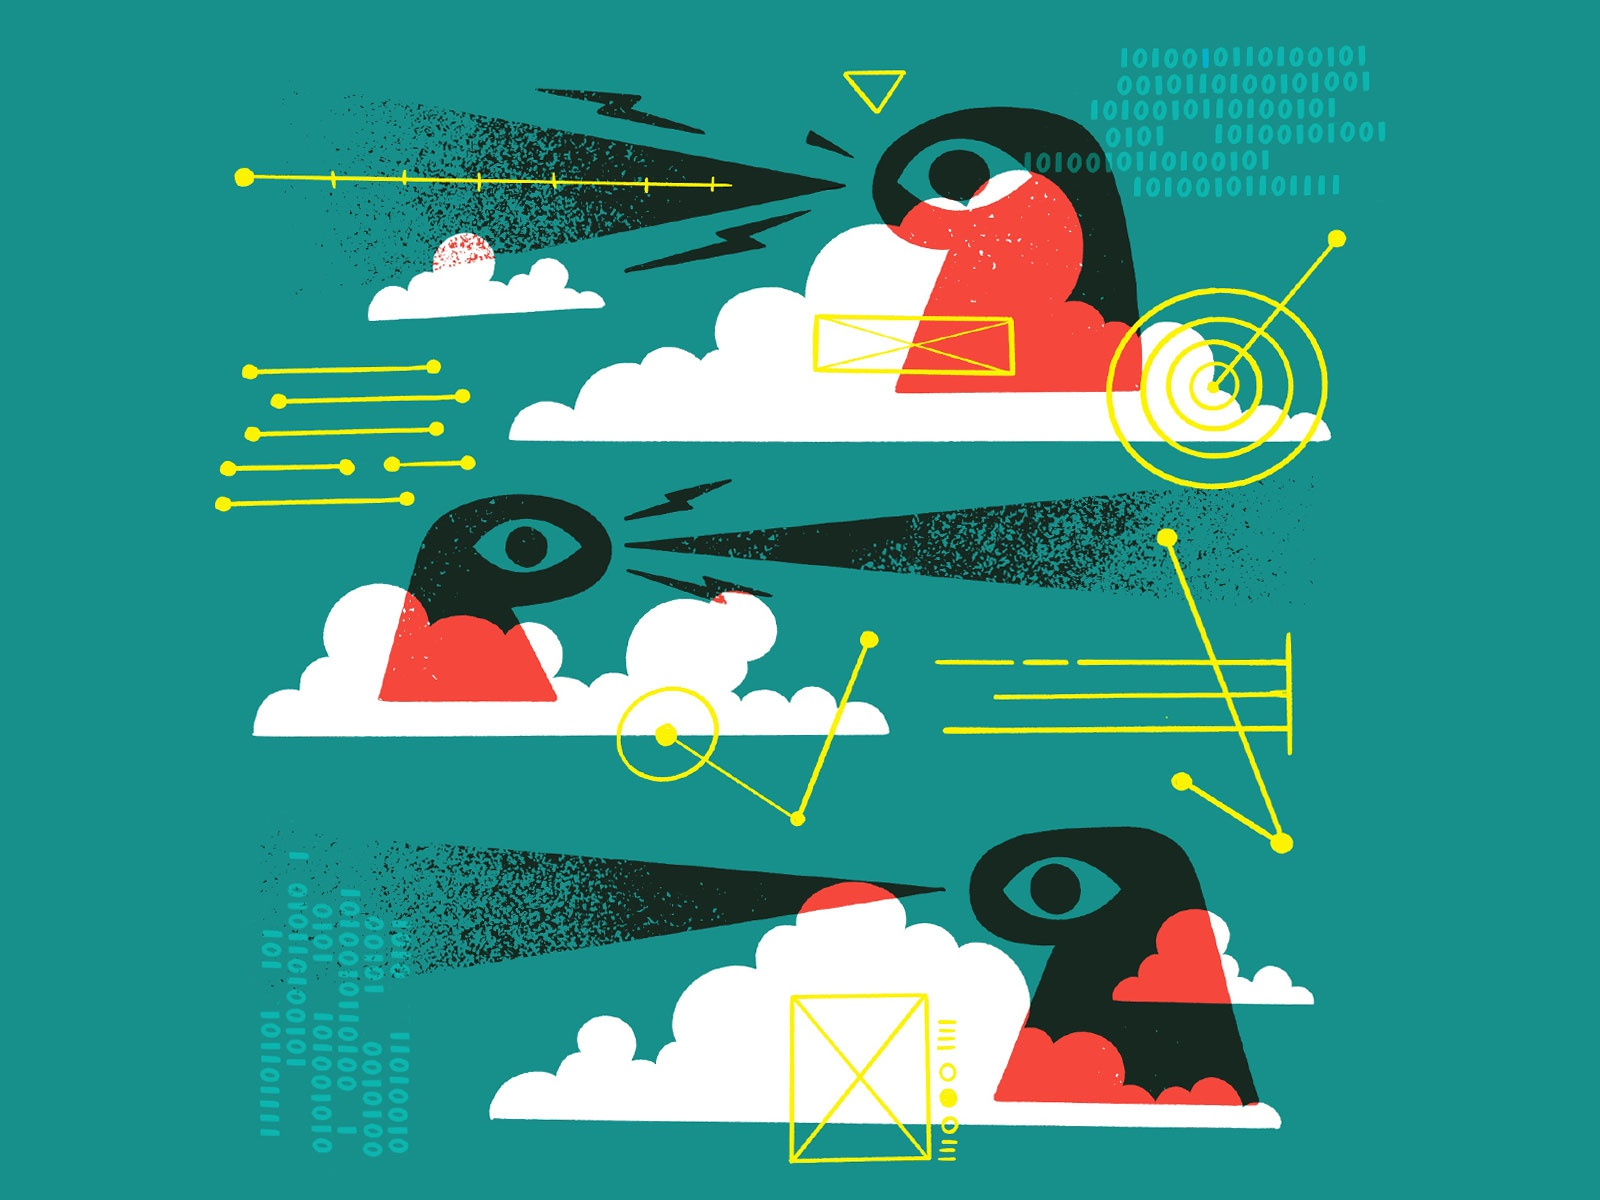 Big Brother is Watching by Jetpacks and Rollerskates on Dribbble.